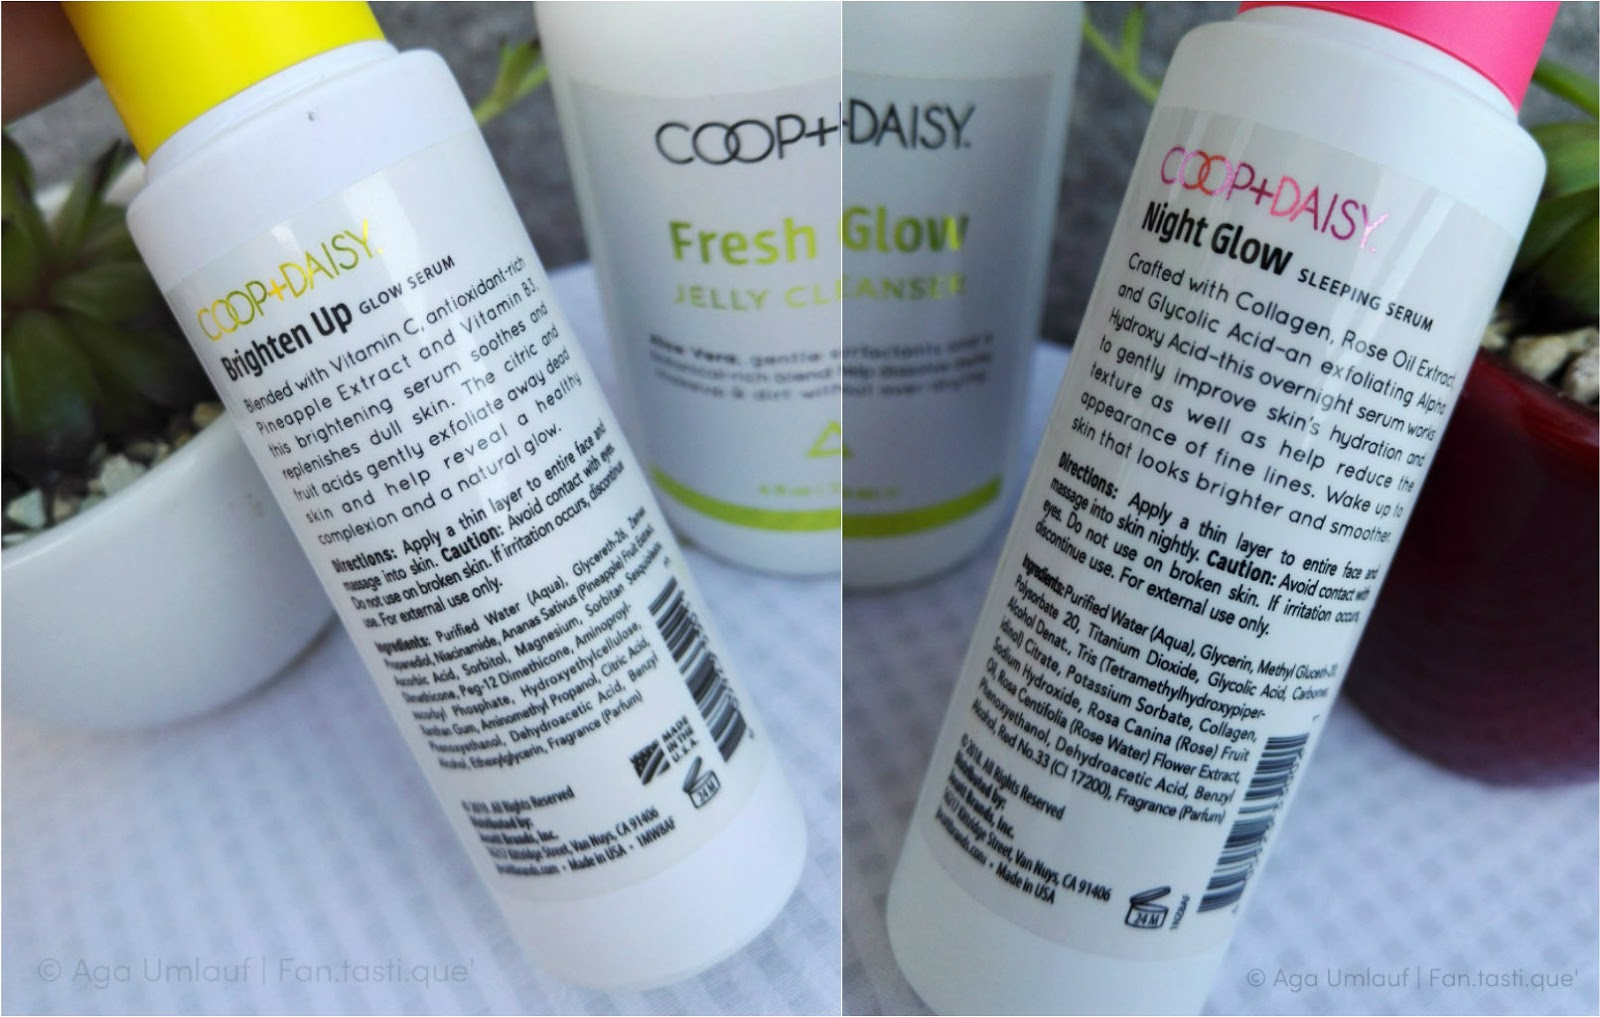 a collage of the labels on the back of the bottles of the COOP+DAISY Brighten Up Glow Serum and the Night Glow Sleeping Serum, showing the directions and ingredients